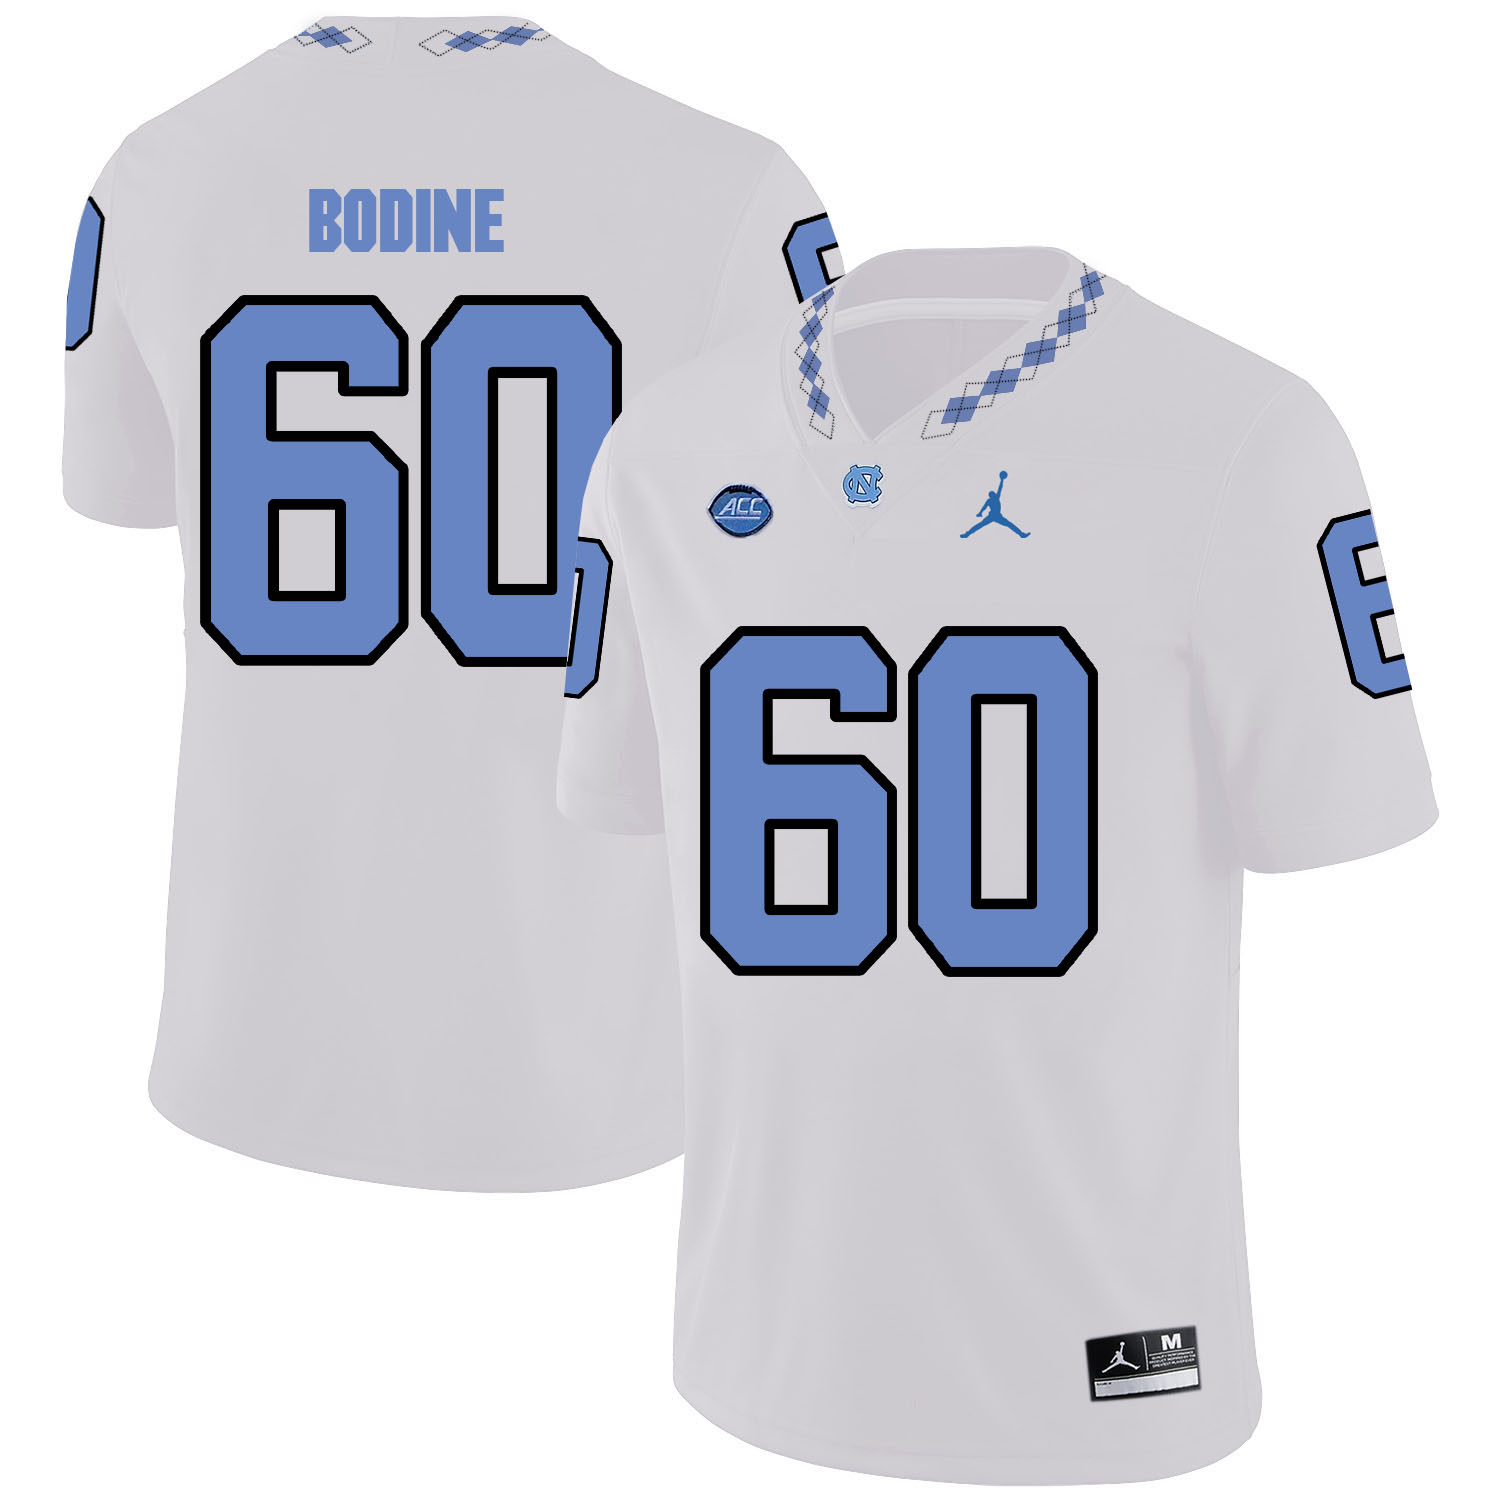 North Carolina Tar Heels 60 Russell Bodine White College Football Jersey